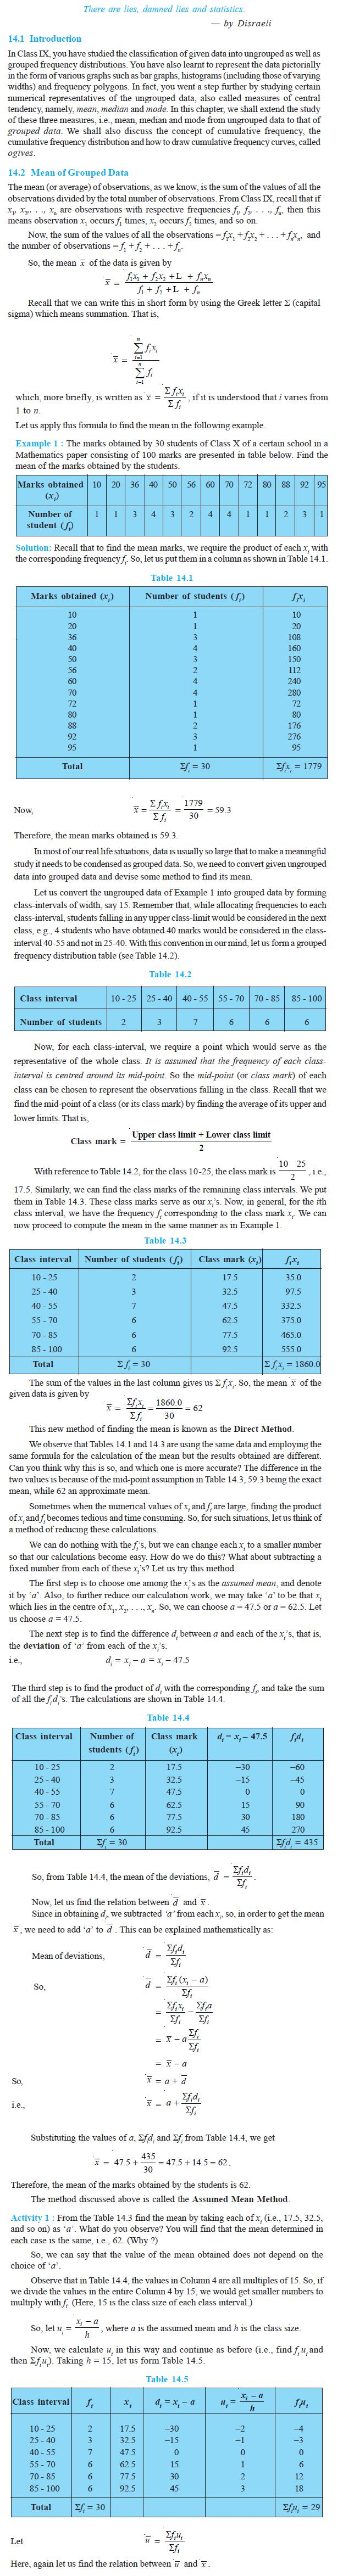 NCERT Class X Maths: Chapter 14 - Statistics